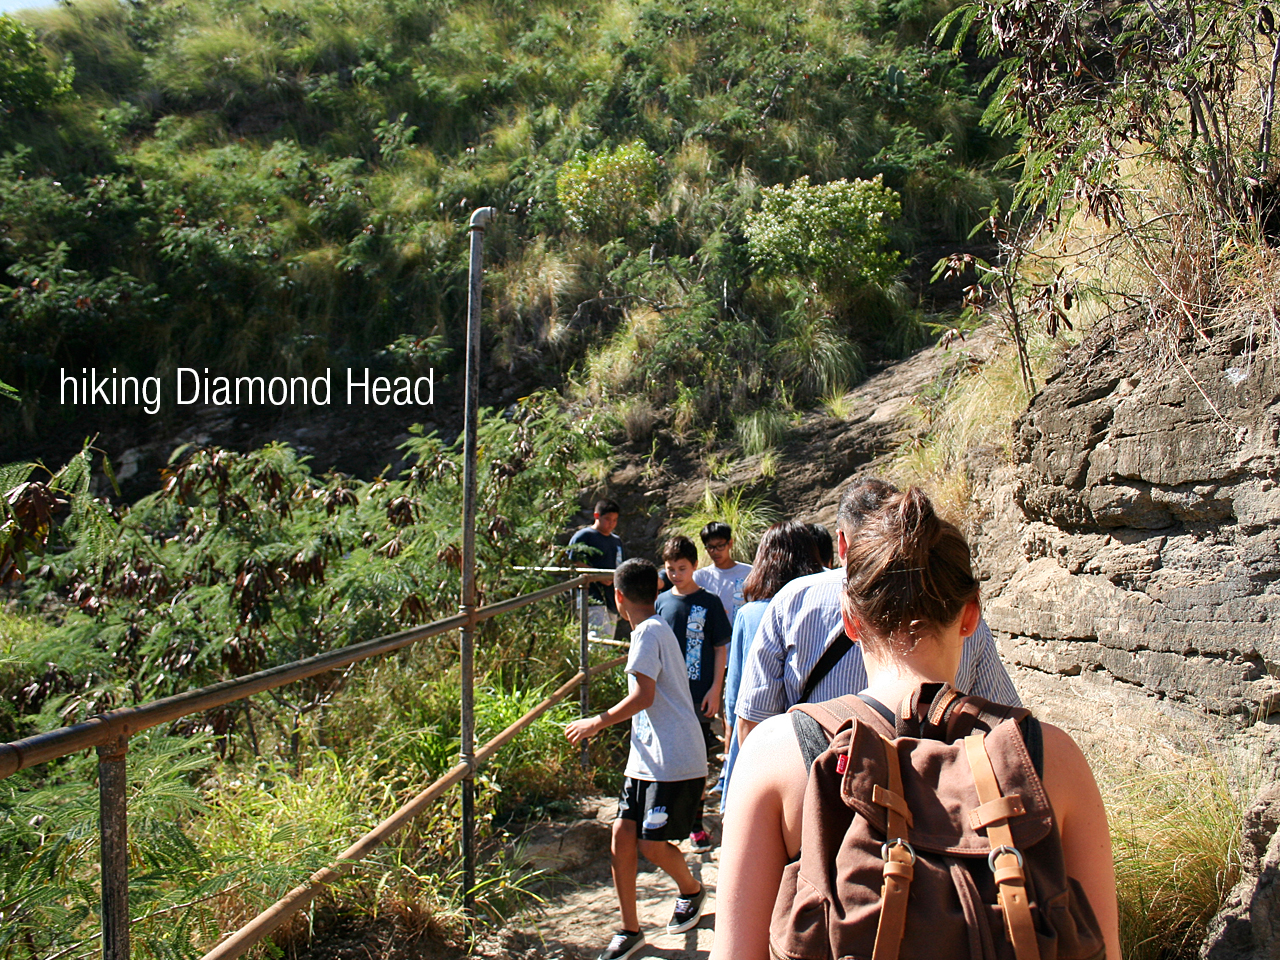 Our 2nd full day on the island we decided to make the hike up to the top of Diamond Head, a large mountainous crater like form that was made from volcanic eruptions long ago. It was also used as a military fort throughoutWorld War I because of it's great vantage point.